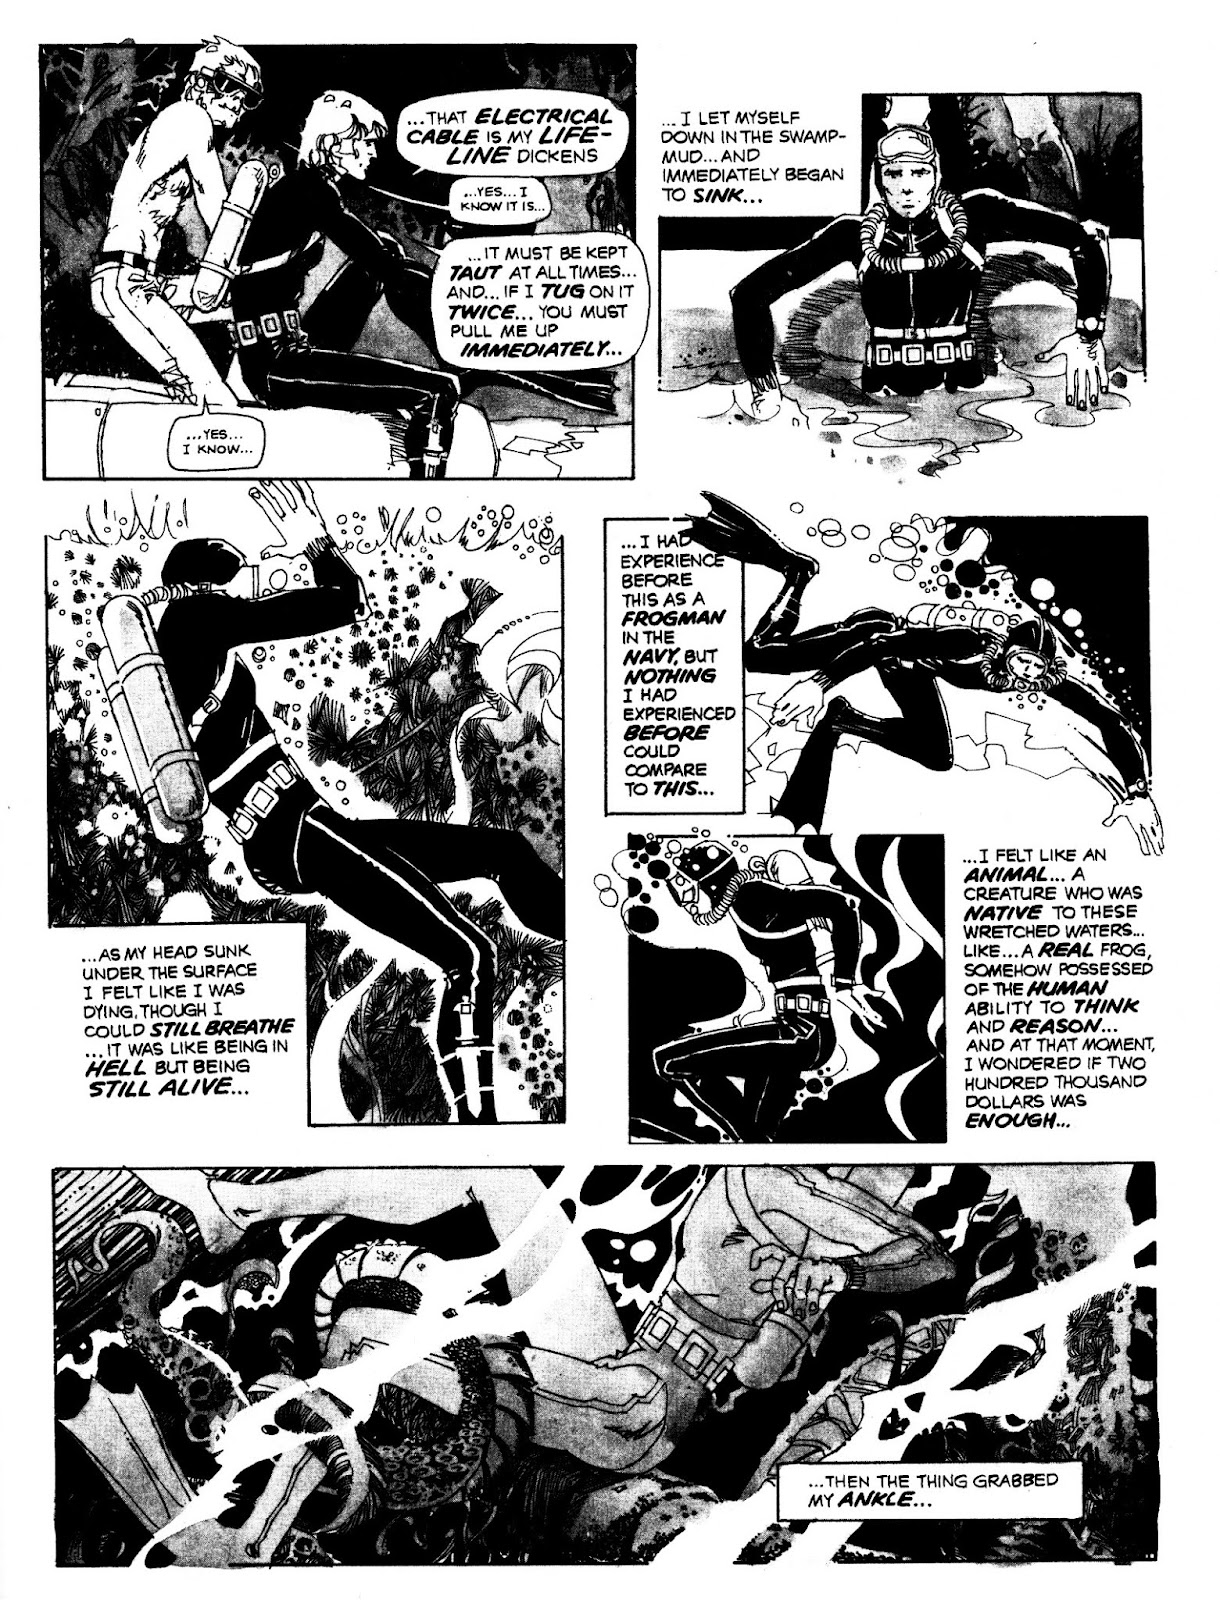 Scream (1973) issue 3 - Page 61